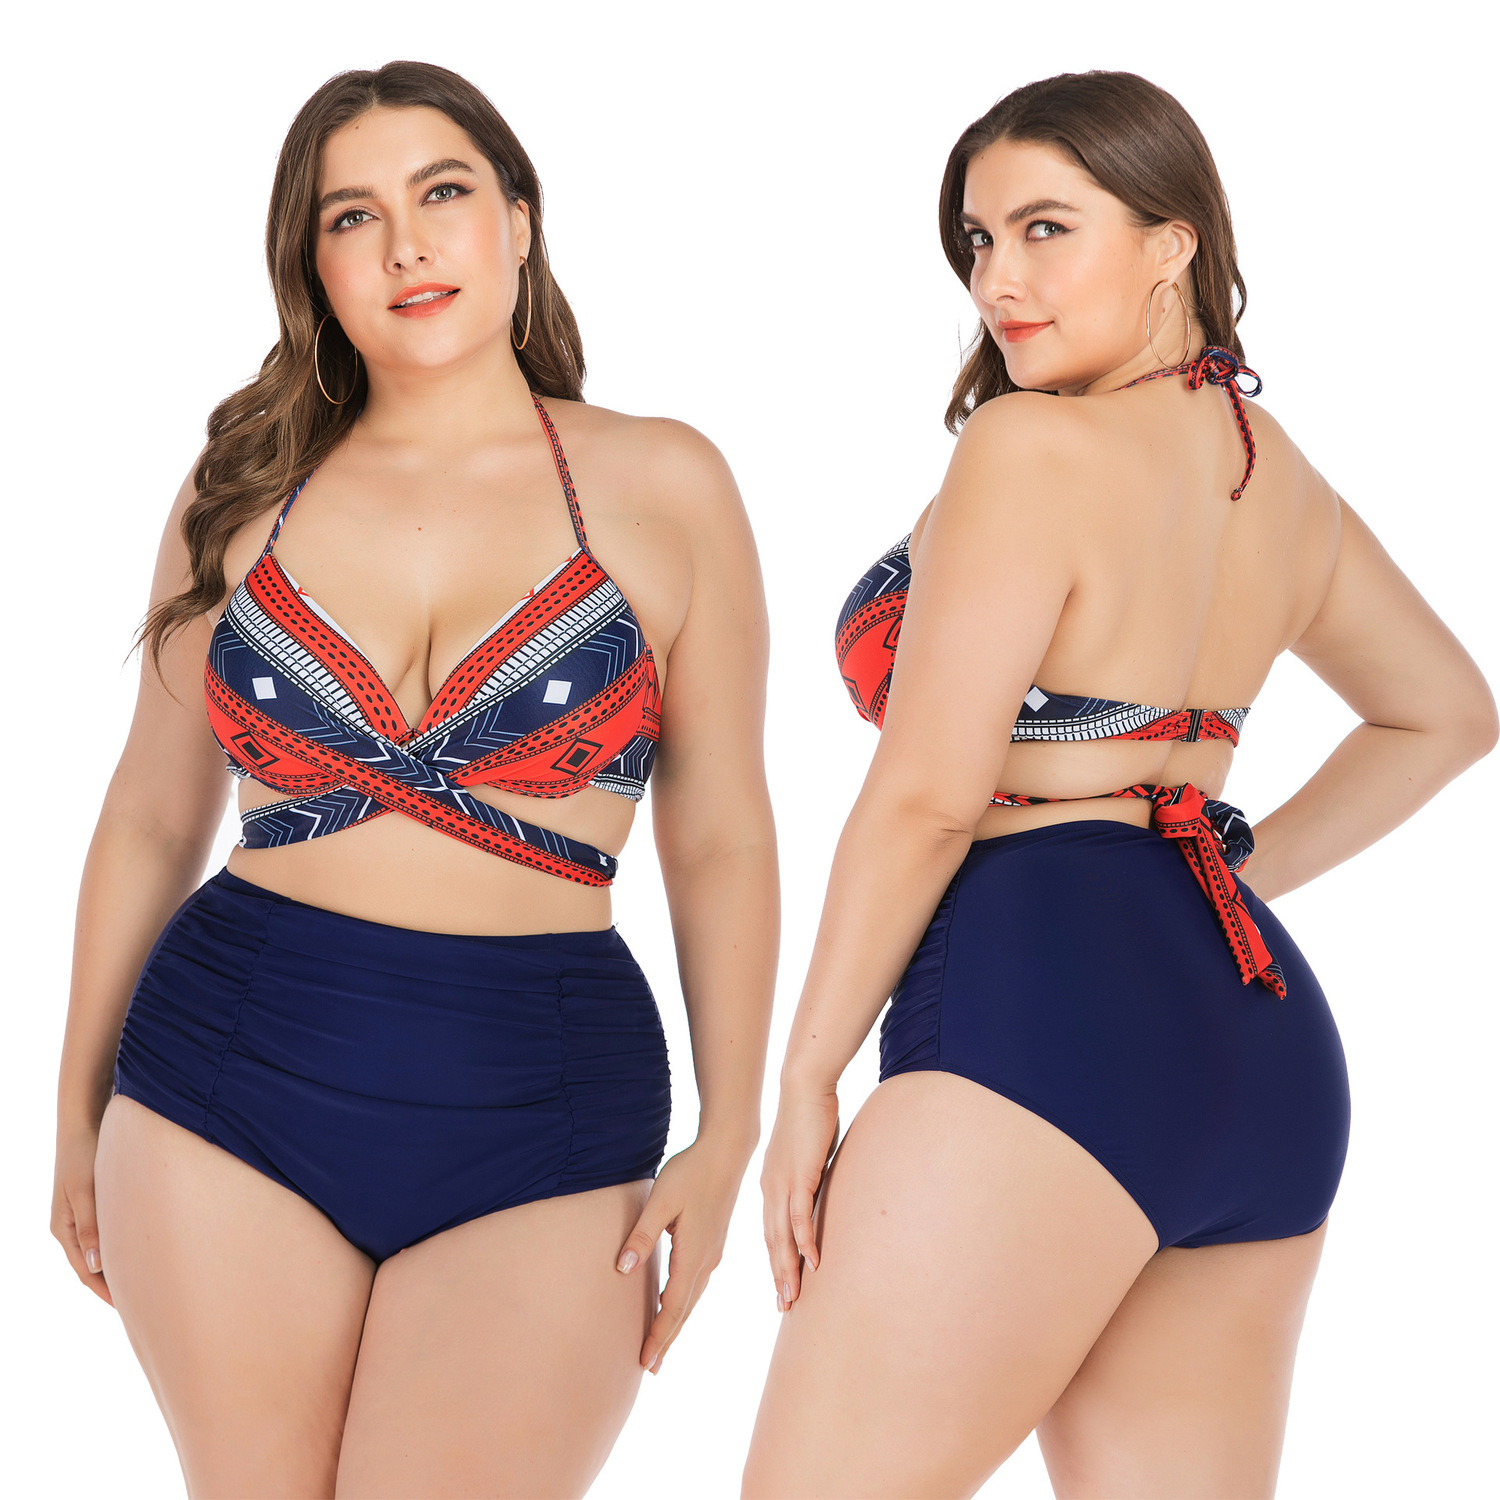 L-4xl Plus Size Sexy Women Bikini High Waist Plus Size Swimsuit Fat Mm Women's Fashion Direct Shipment